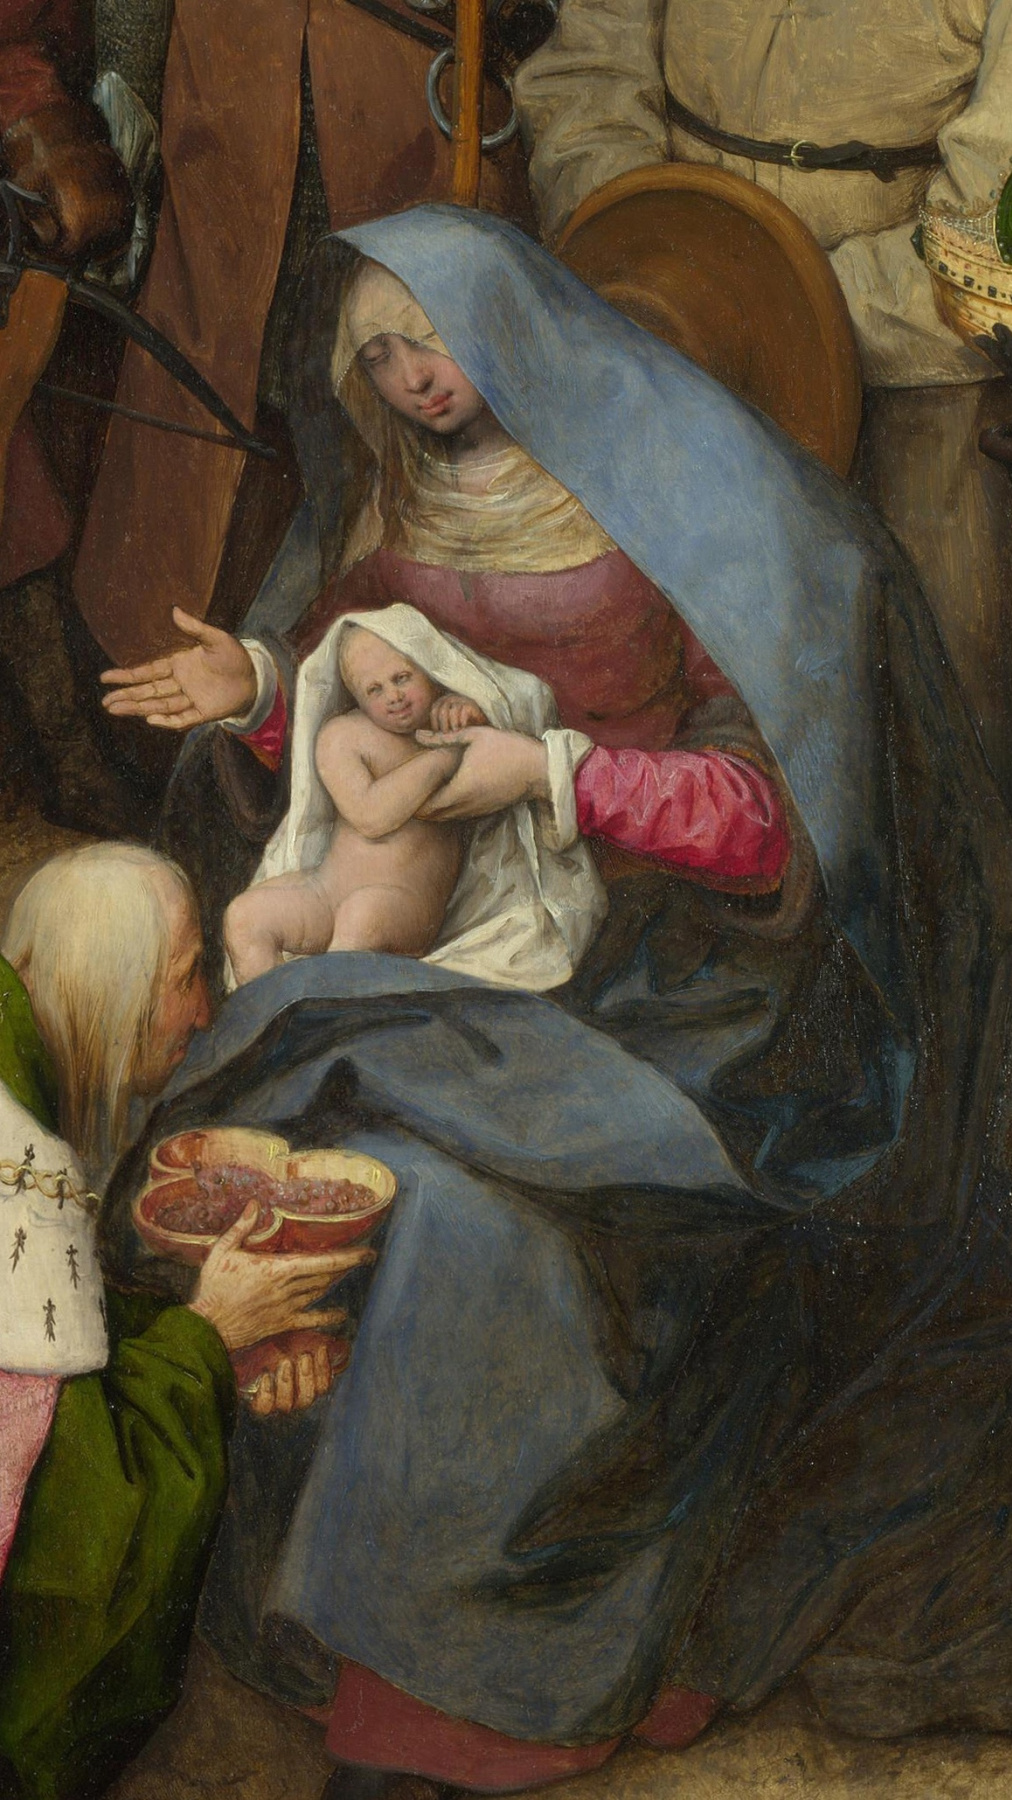 Pieter Bruegel The Elder. The adoration of the Magi. Fragment 3. Mary with child